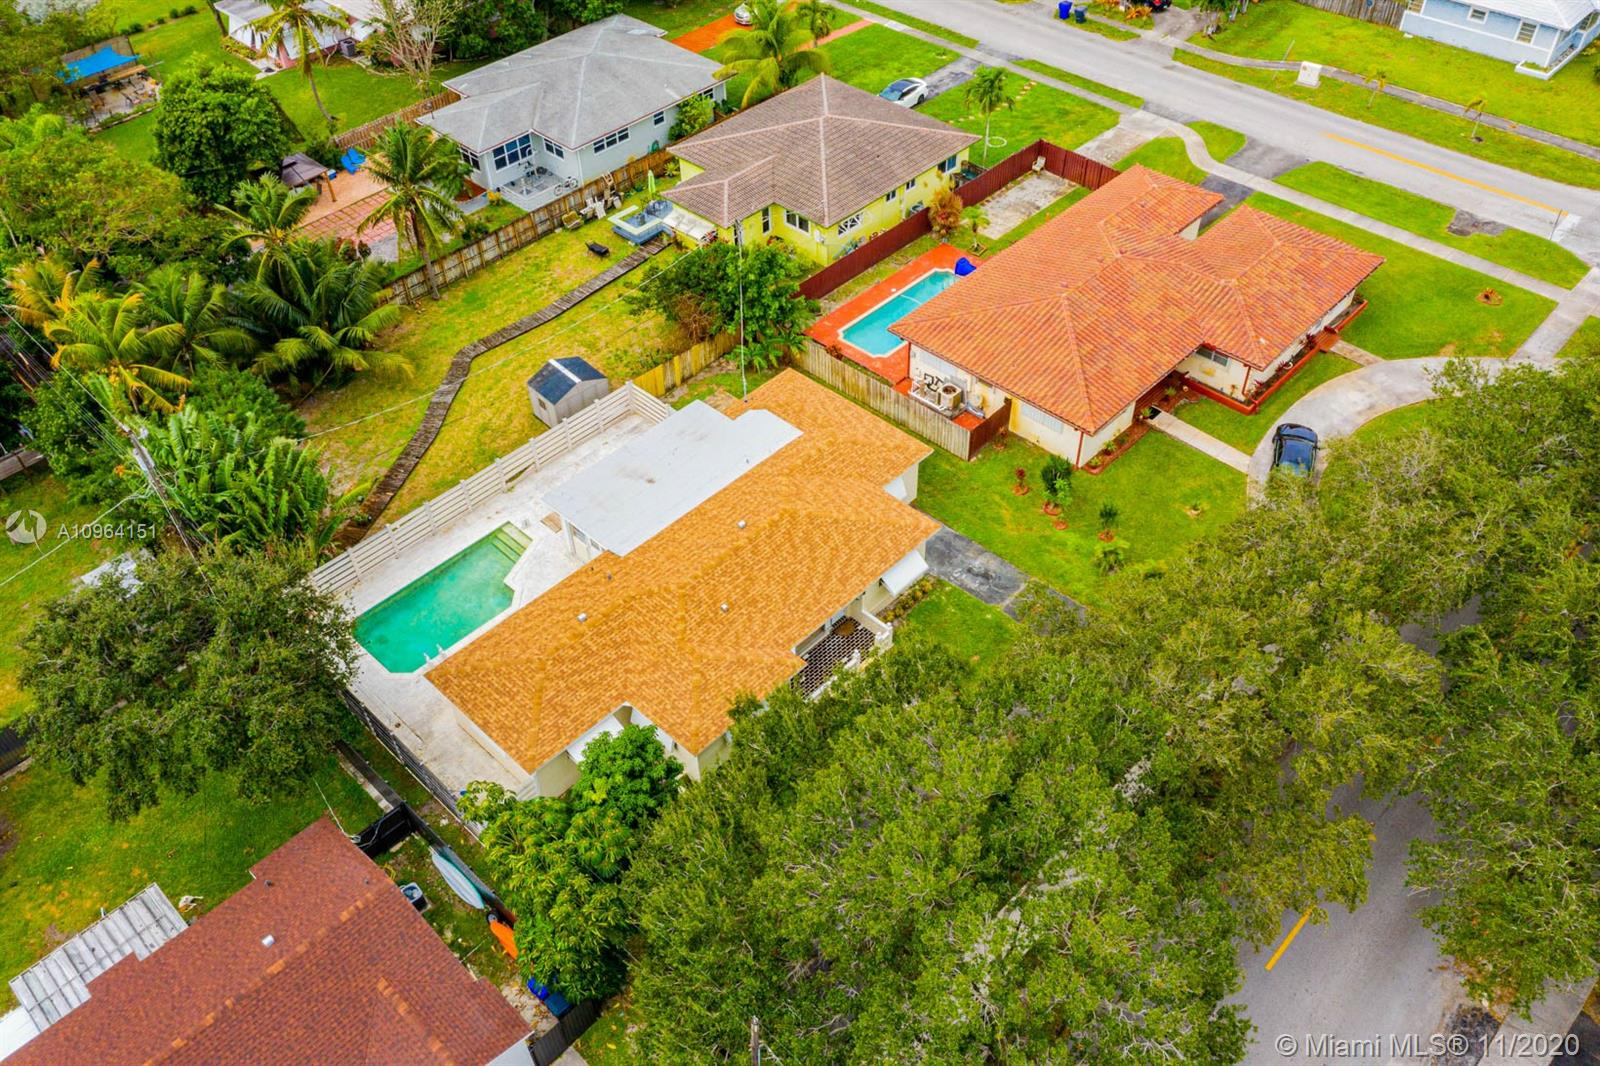 Hollywood Little Ranches - 416 N 26th Ave, Hollywood, FL 33020